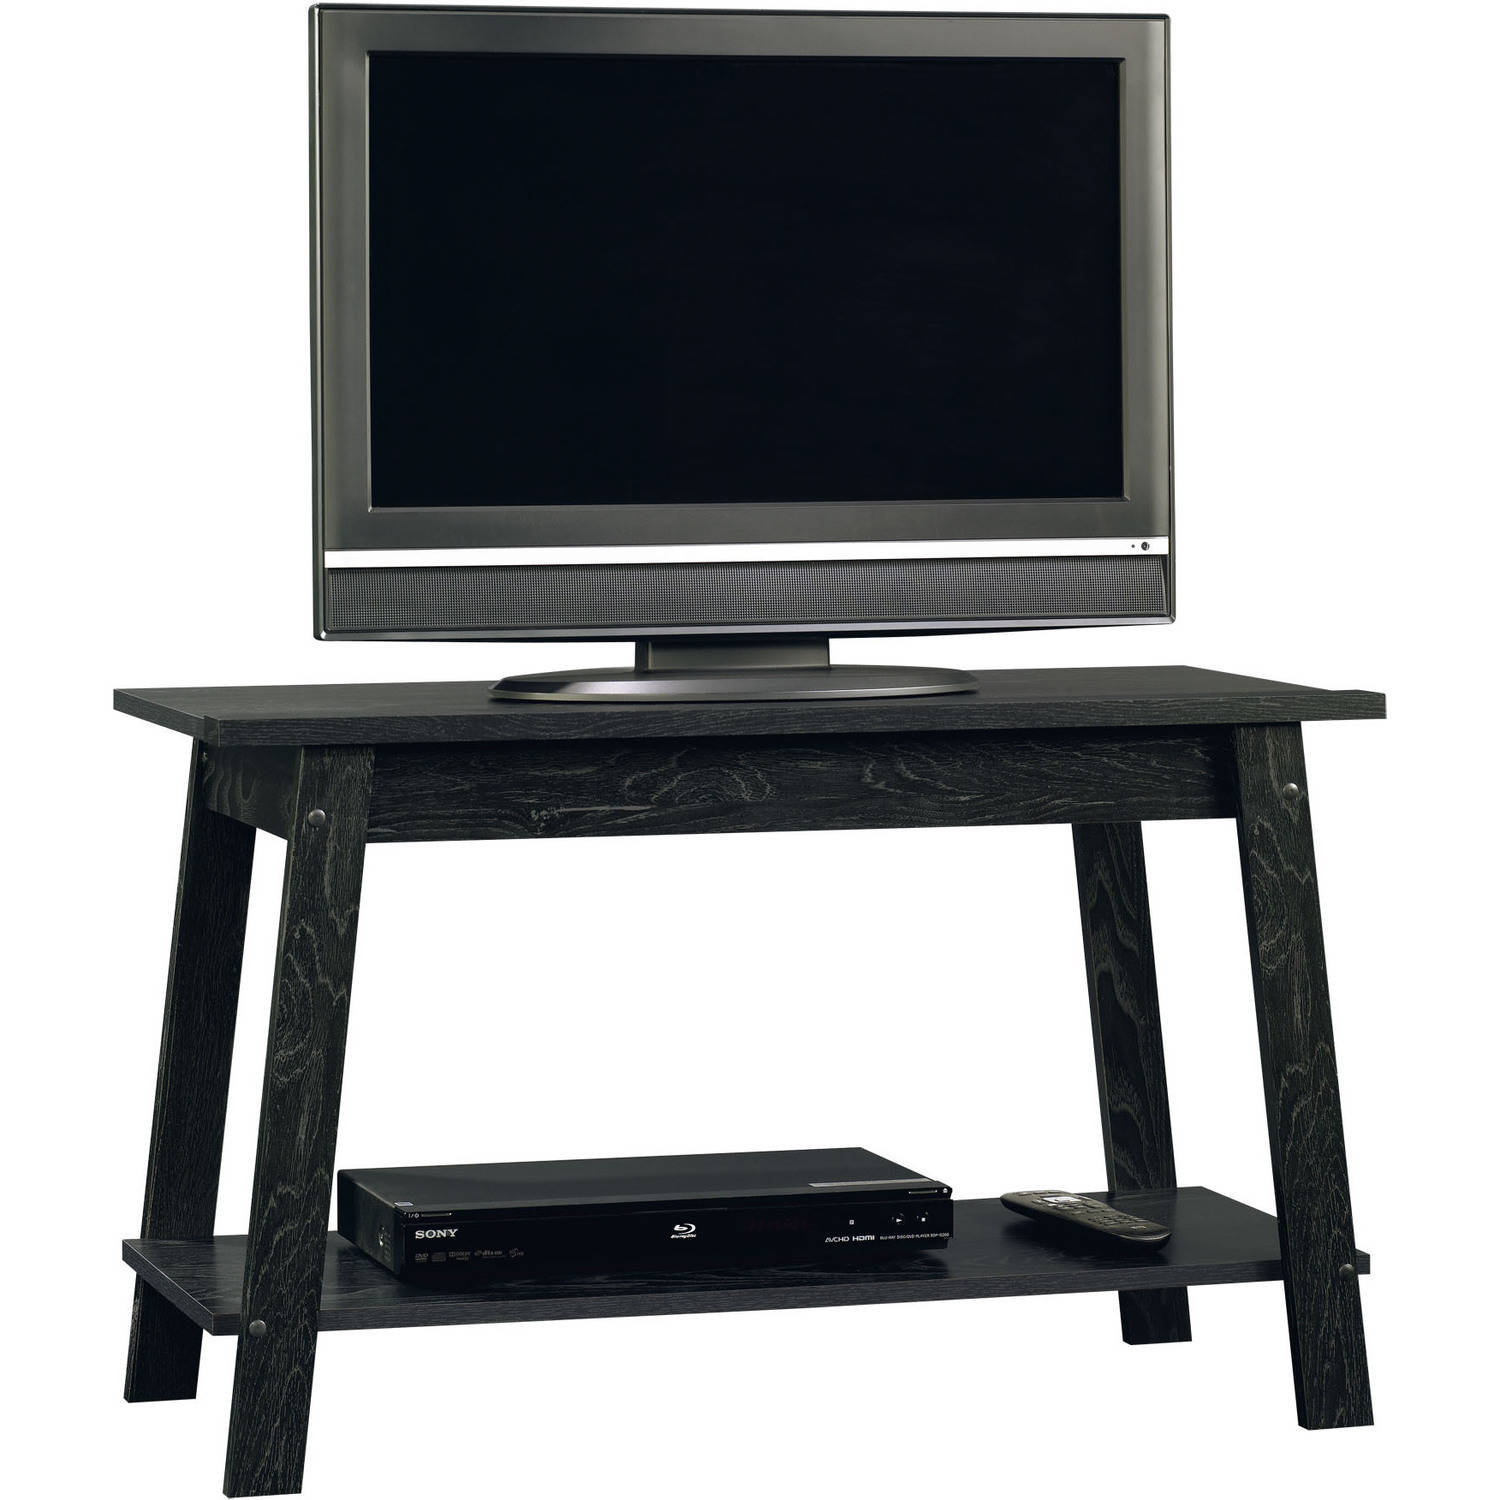 Tall Narrow Tv Stand For Bedroom 32 Inch Target Bookcase Extra White throughout Murphy 72 Inch Tv Stands (Image 26 of 30)